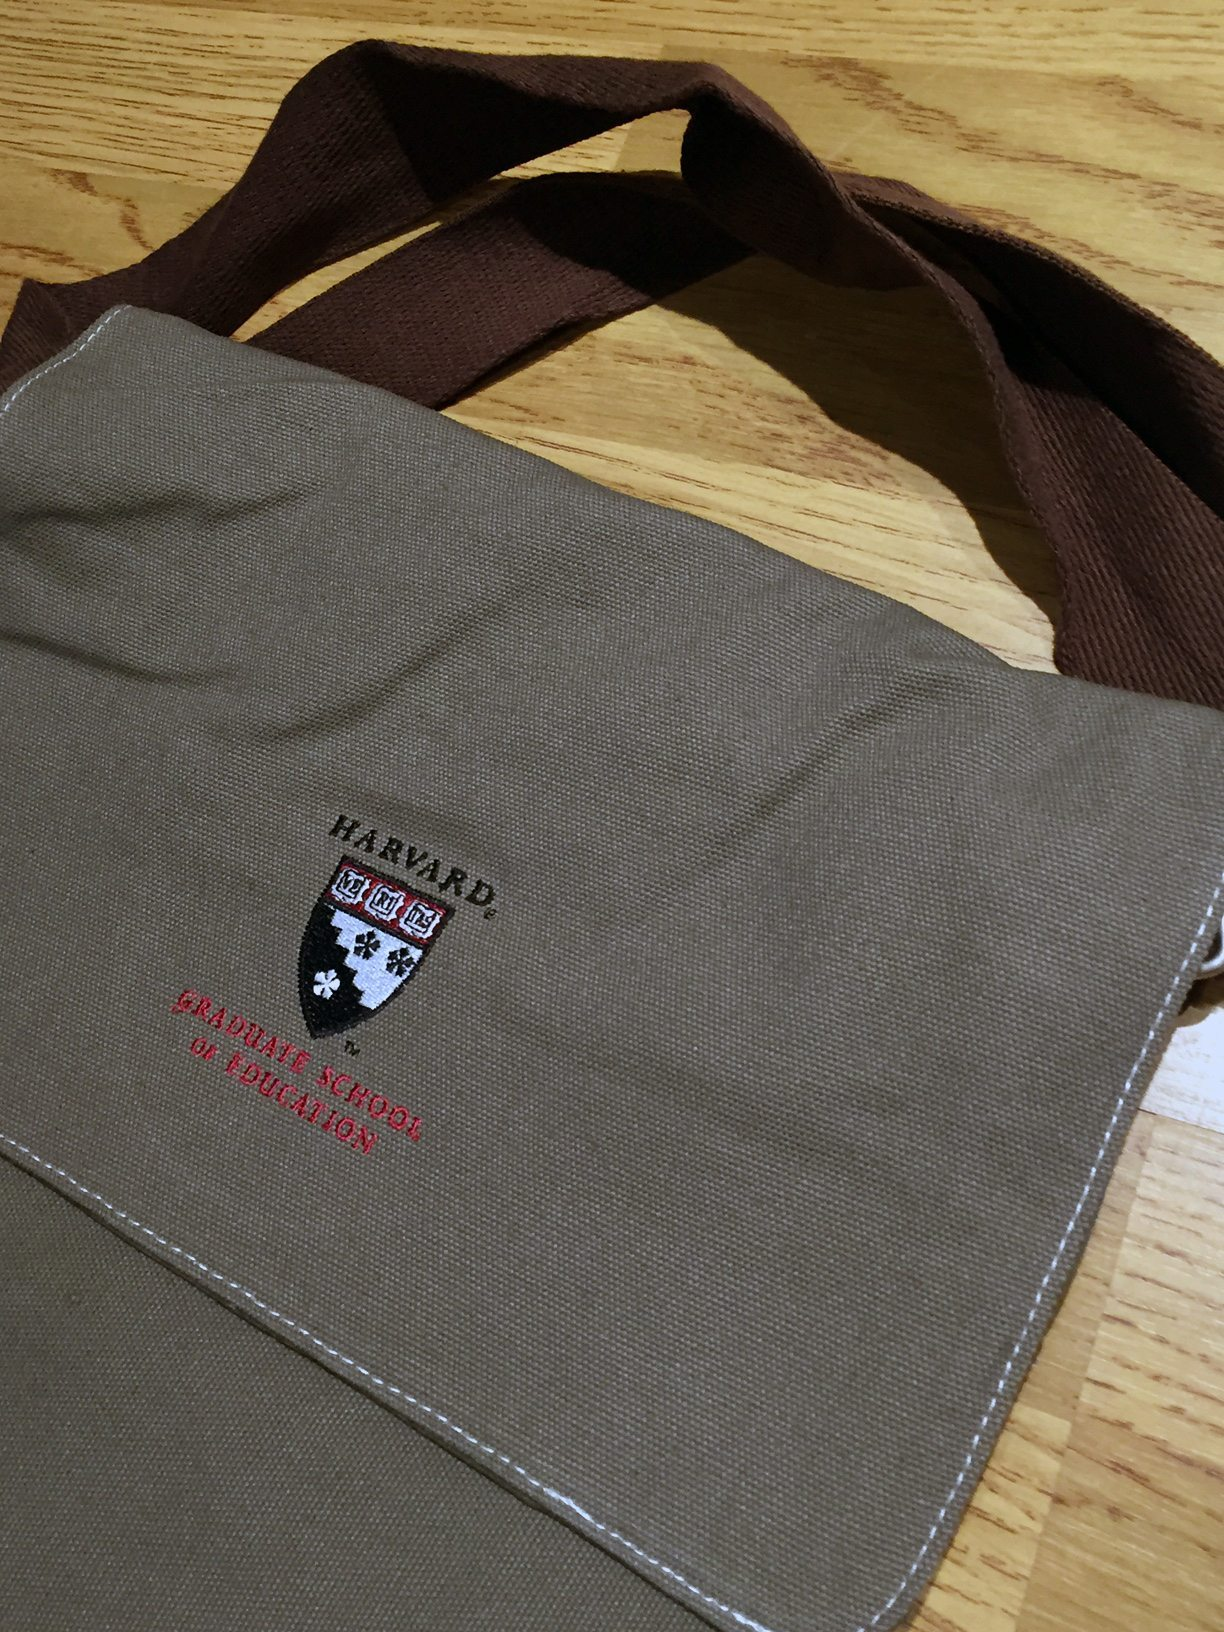 Harvard University Messenger Bag